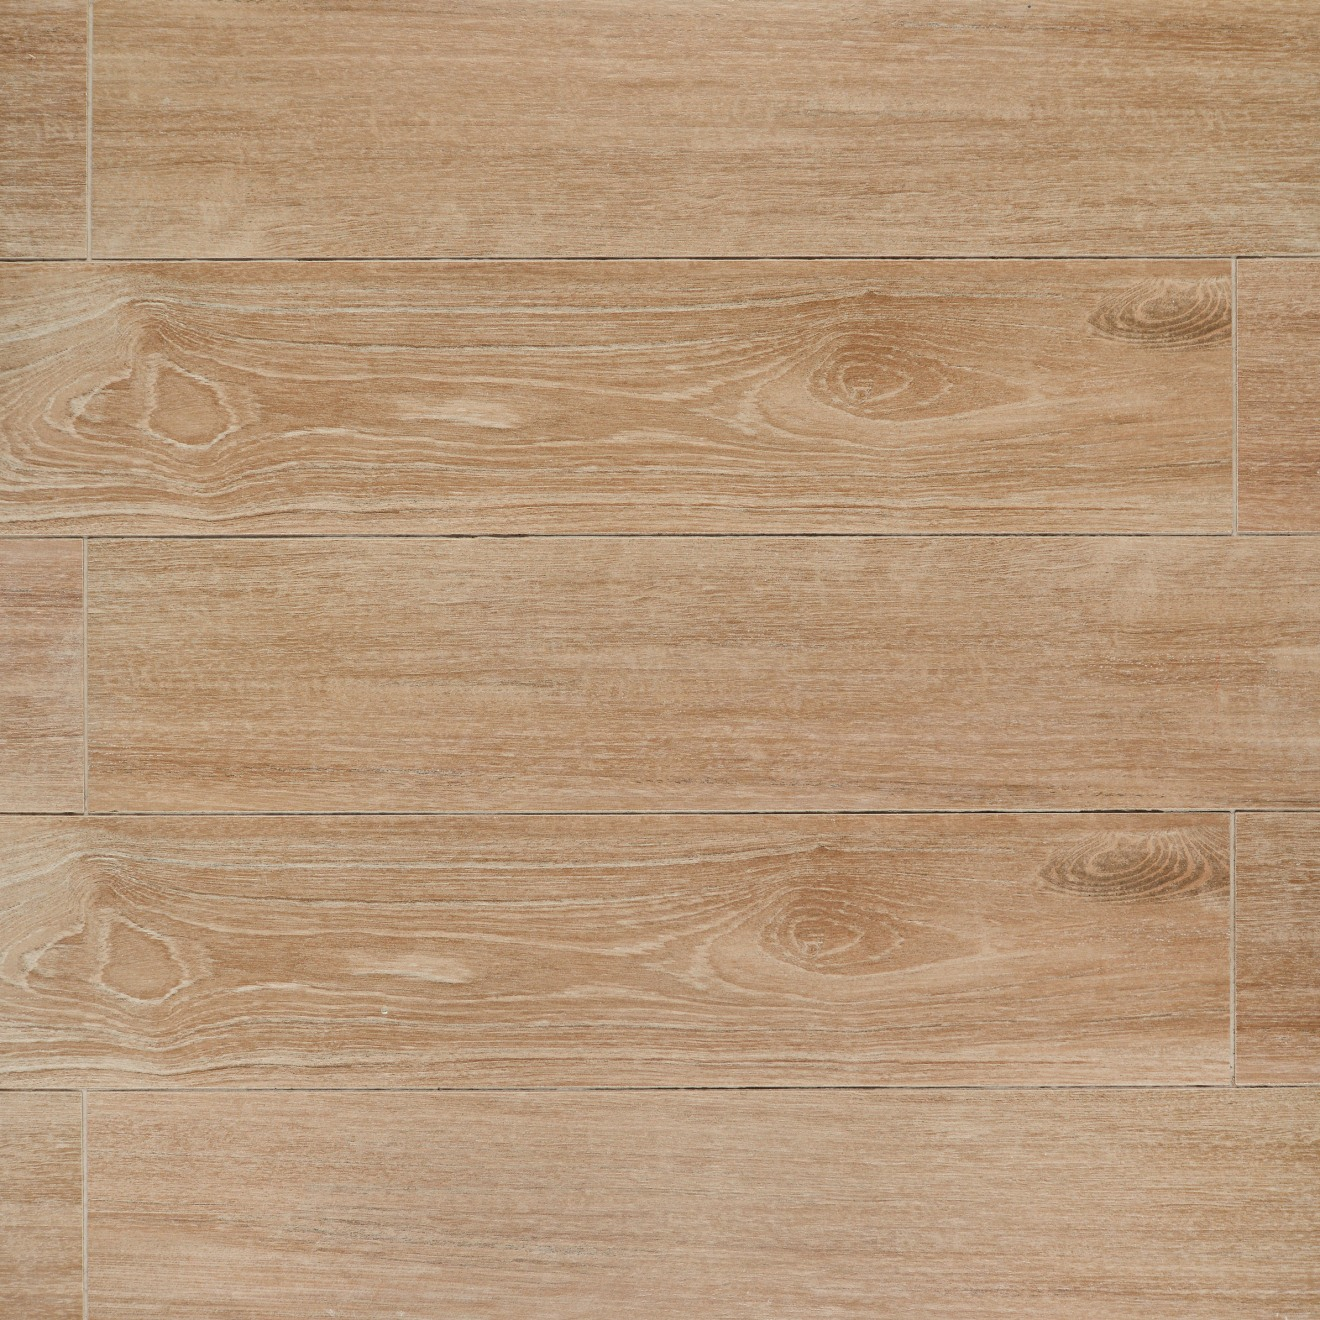 Chesapeake 8 X 36 X 38 Floor And Wall Tile In Light Cherry